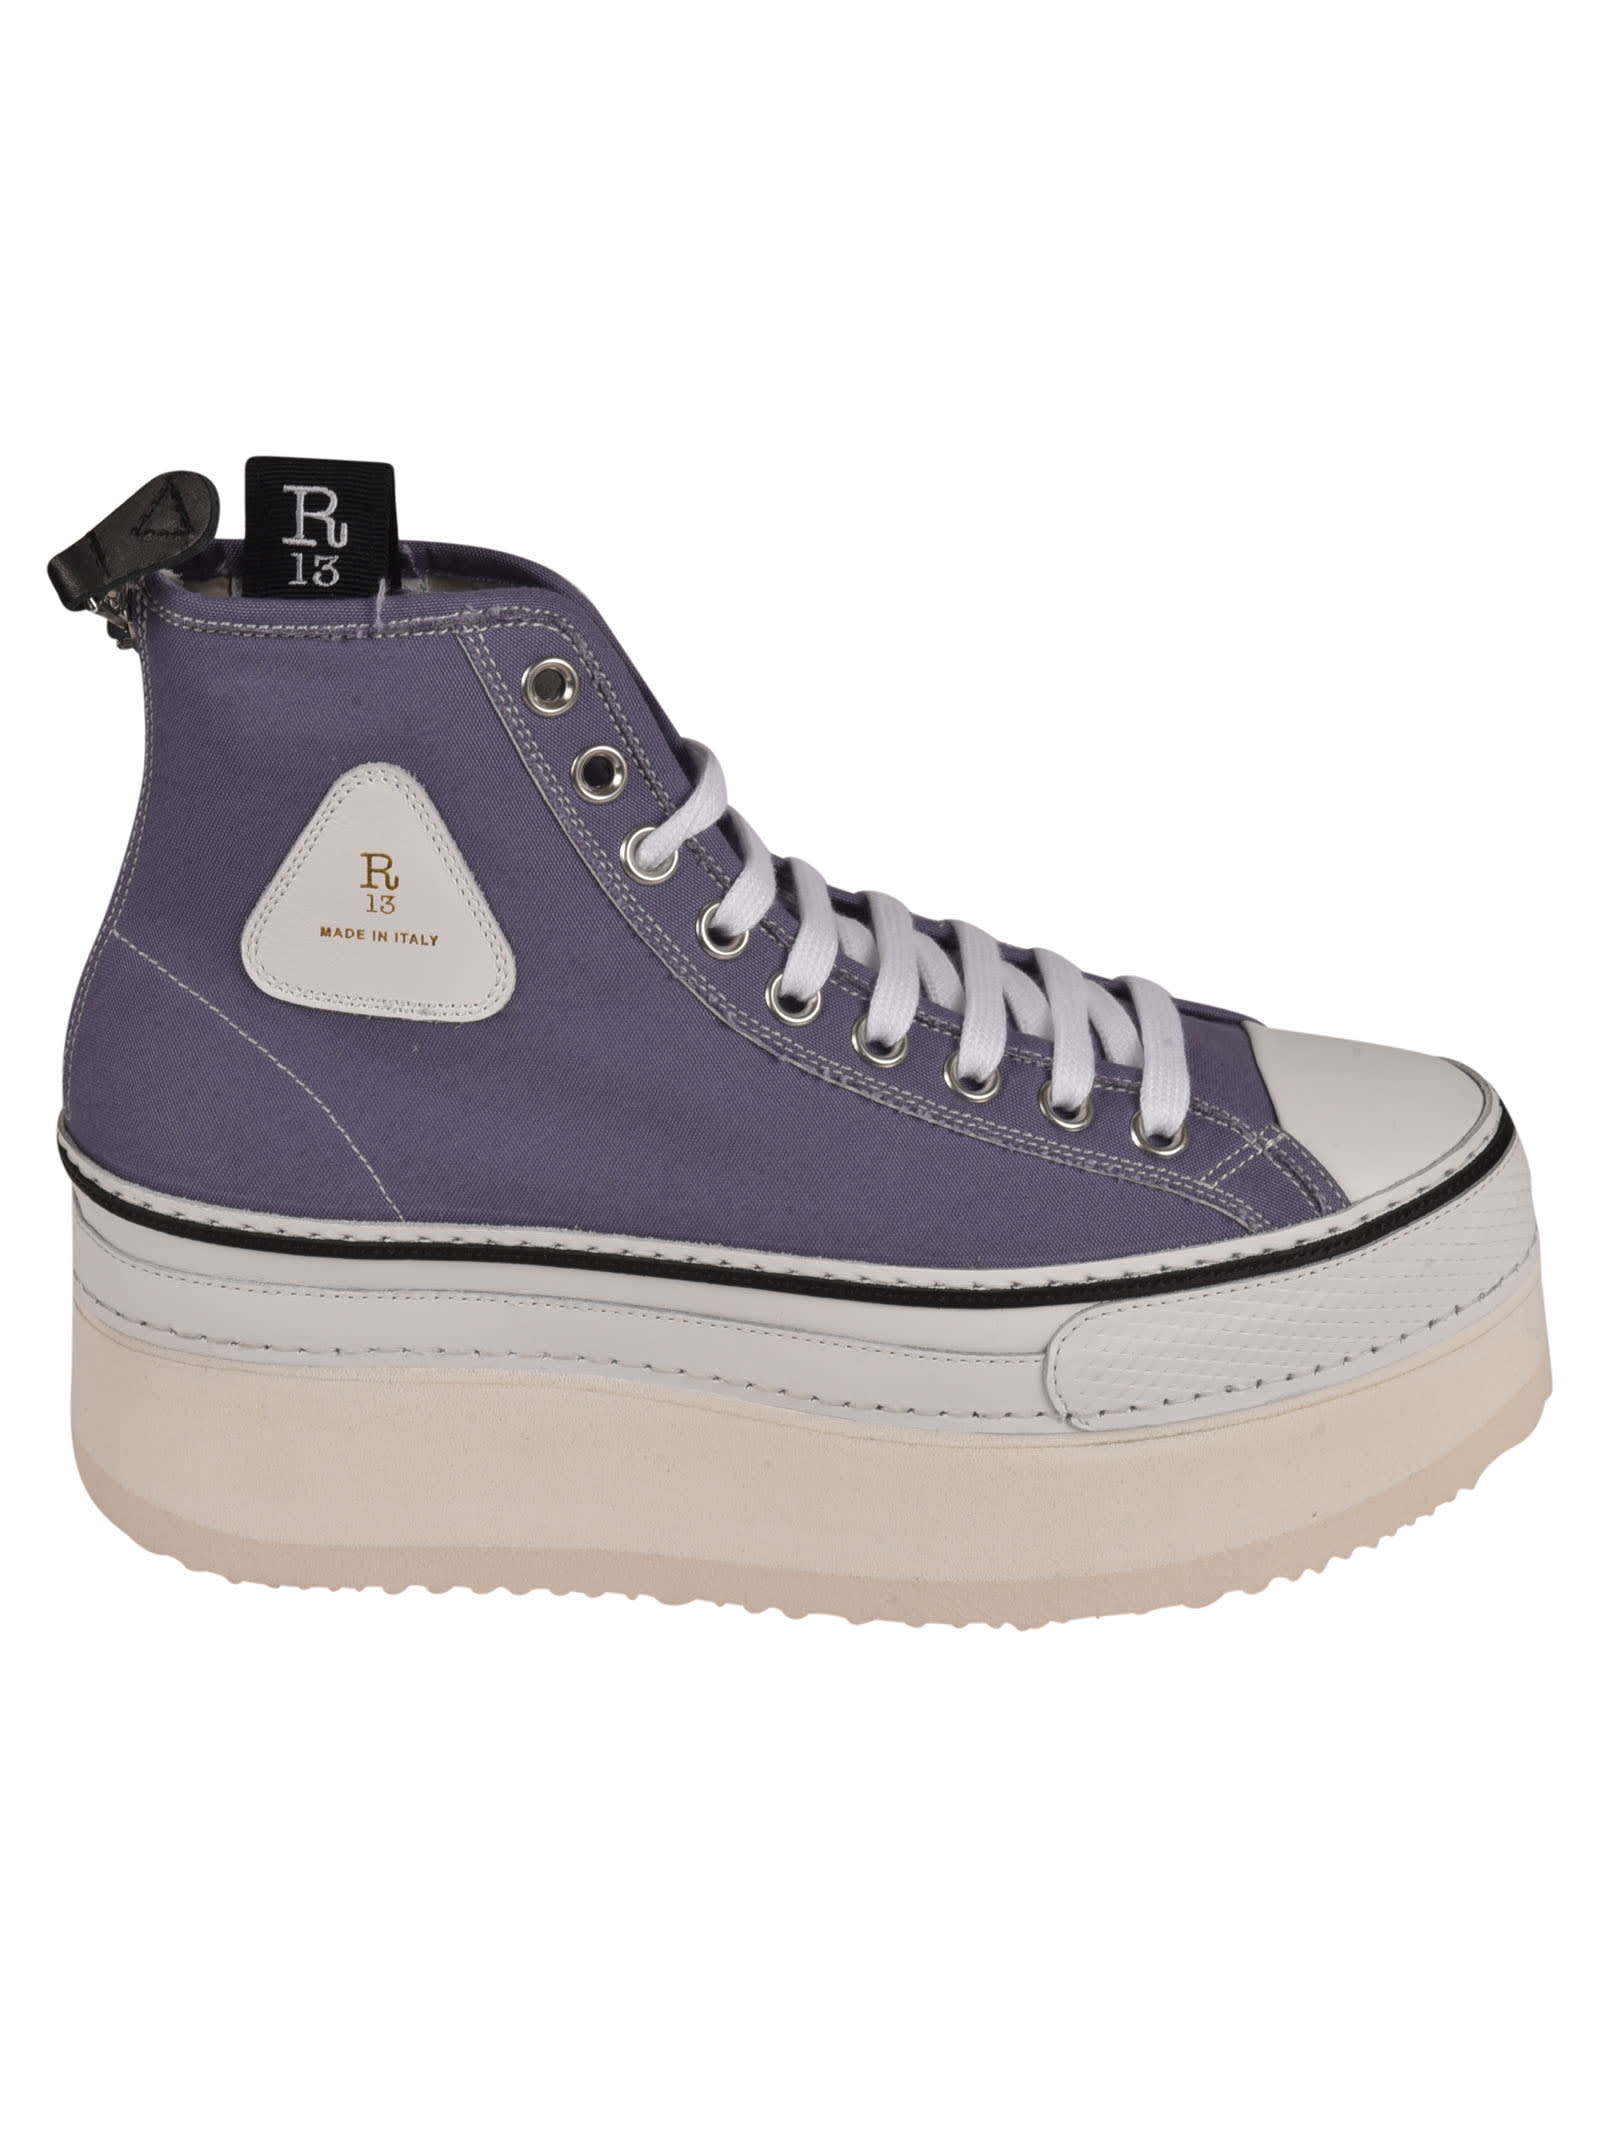 R13 Canvases PLATFORM HIGH TOP SNEAKERS